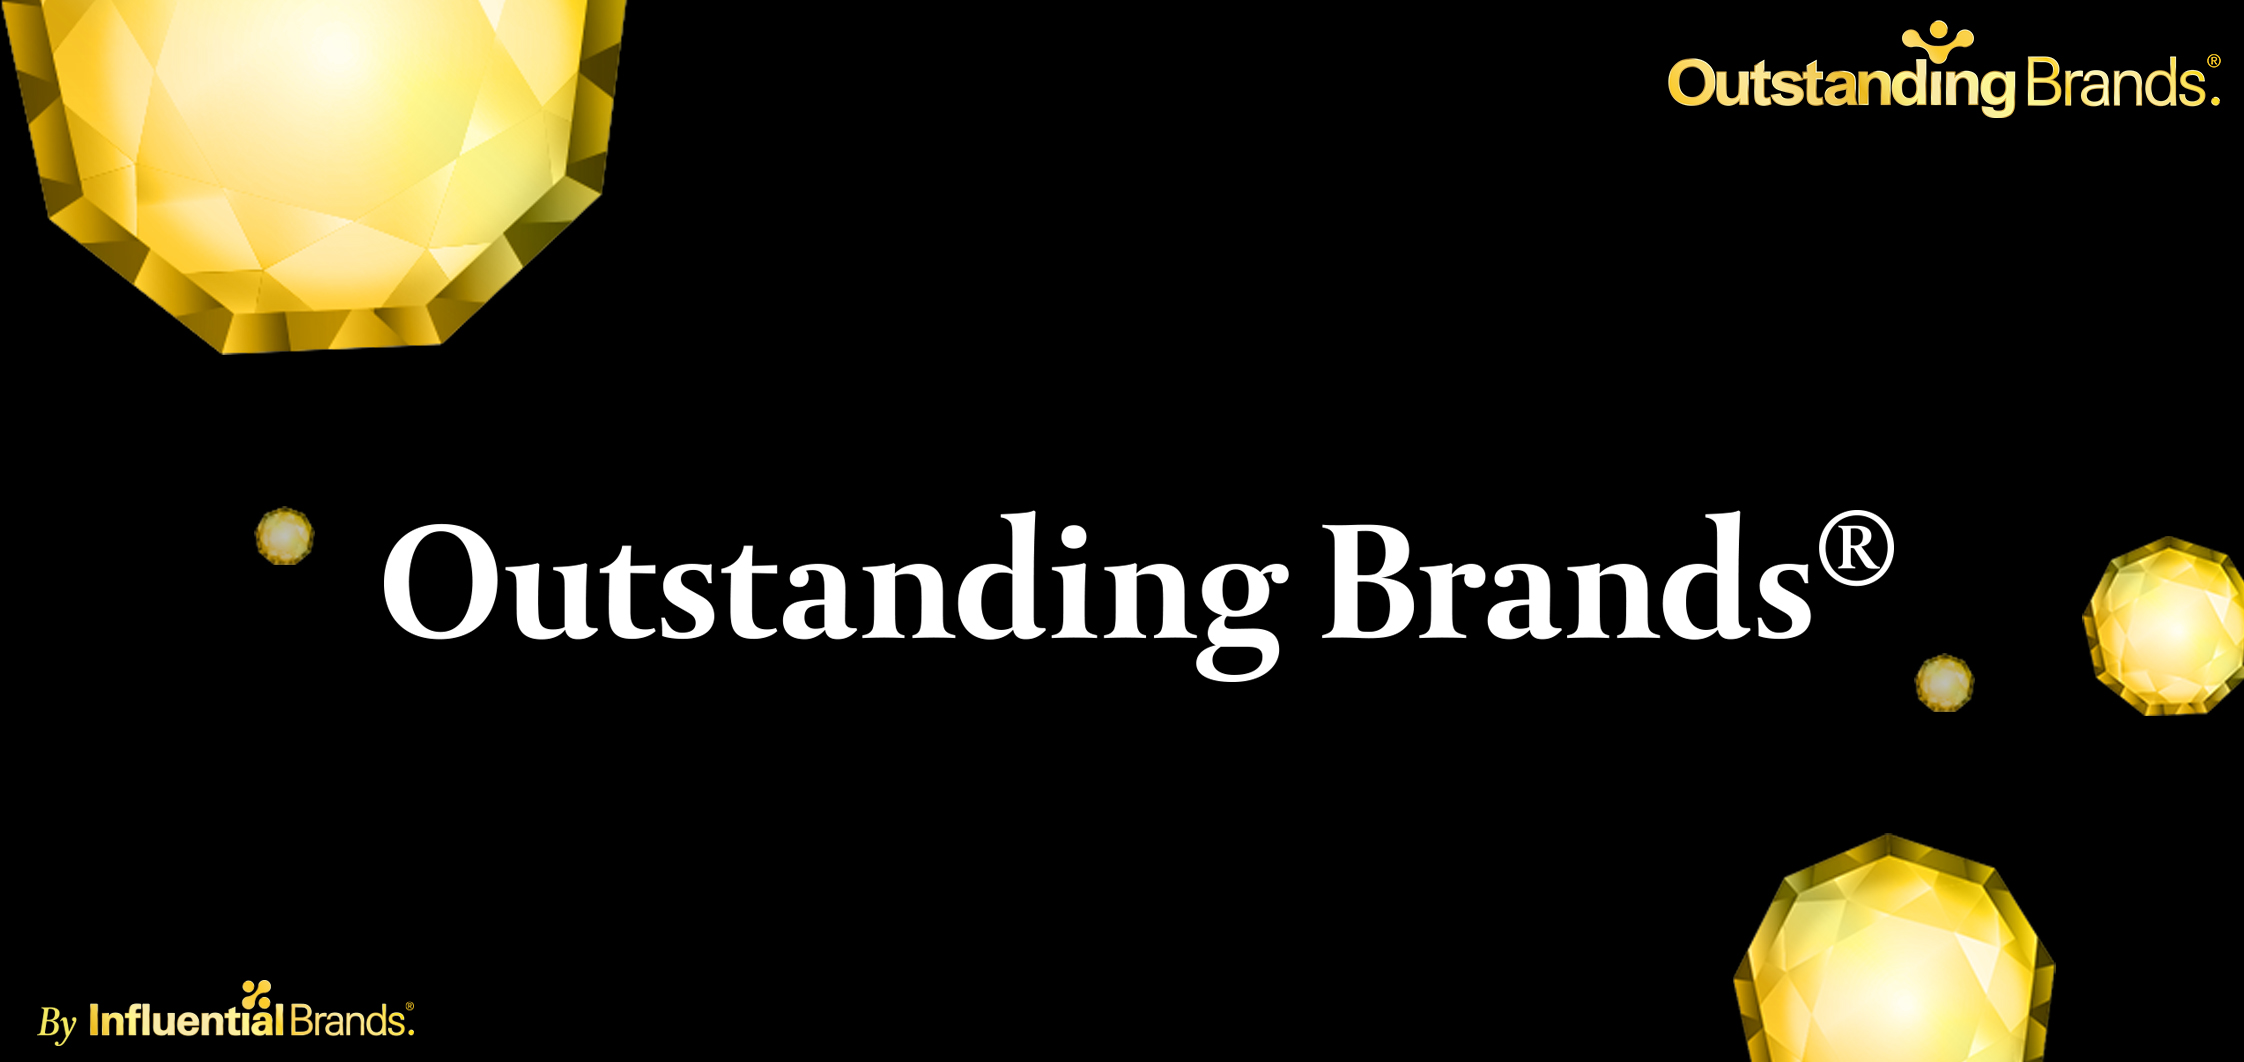 outstanding brands slide-5